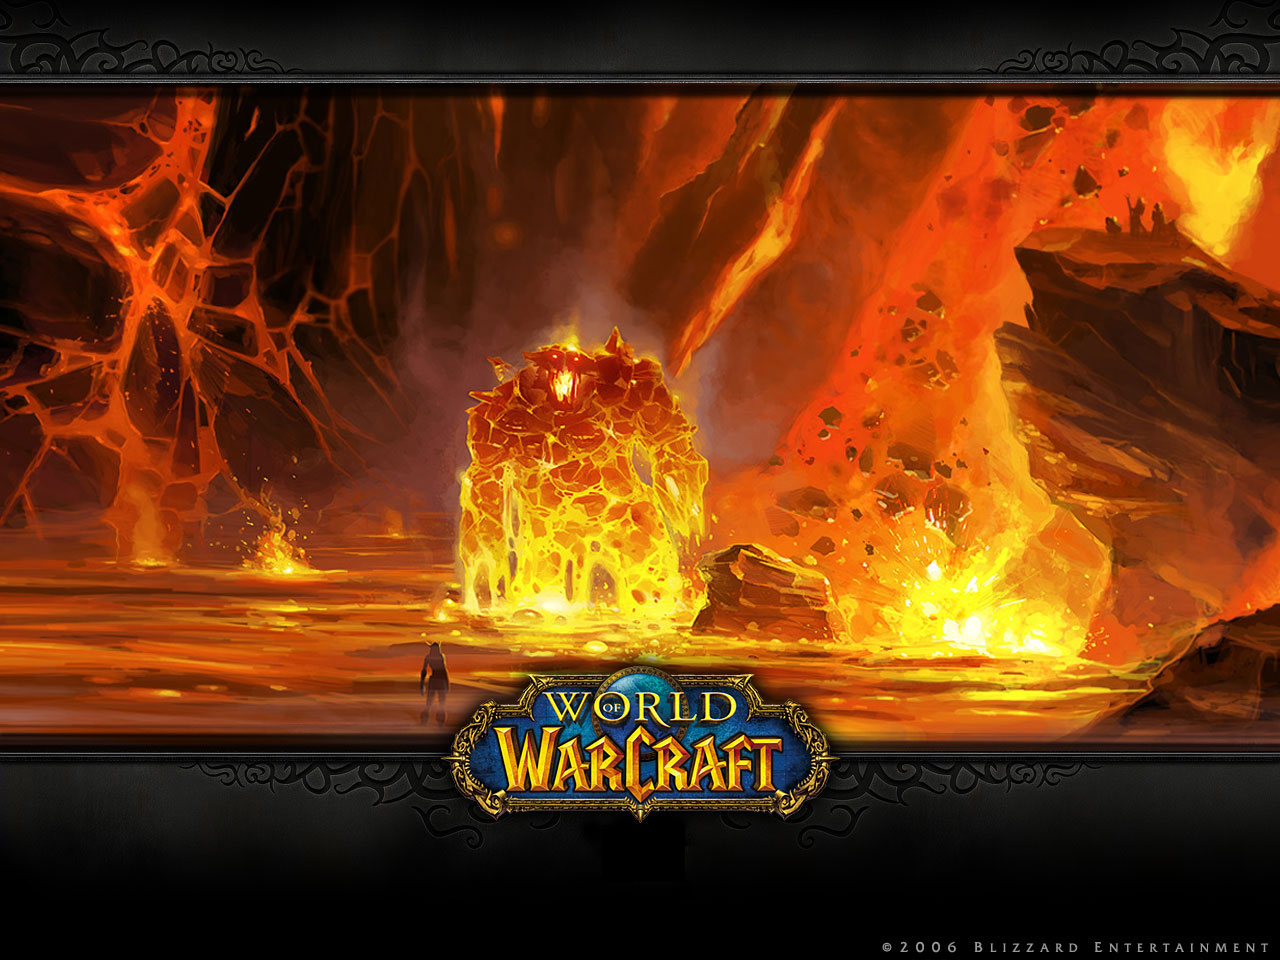 Hey guys just got this World of Warcraft and Dota Allstars Wallpapers and